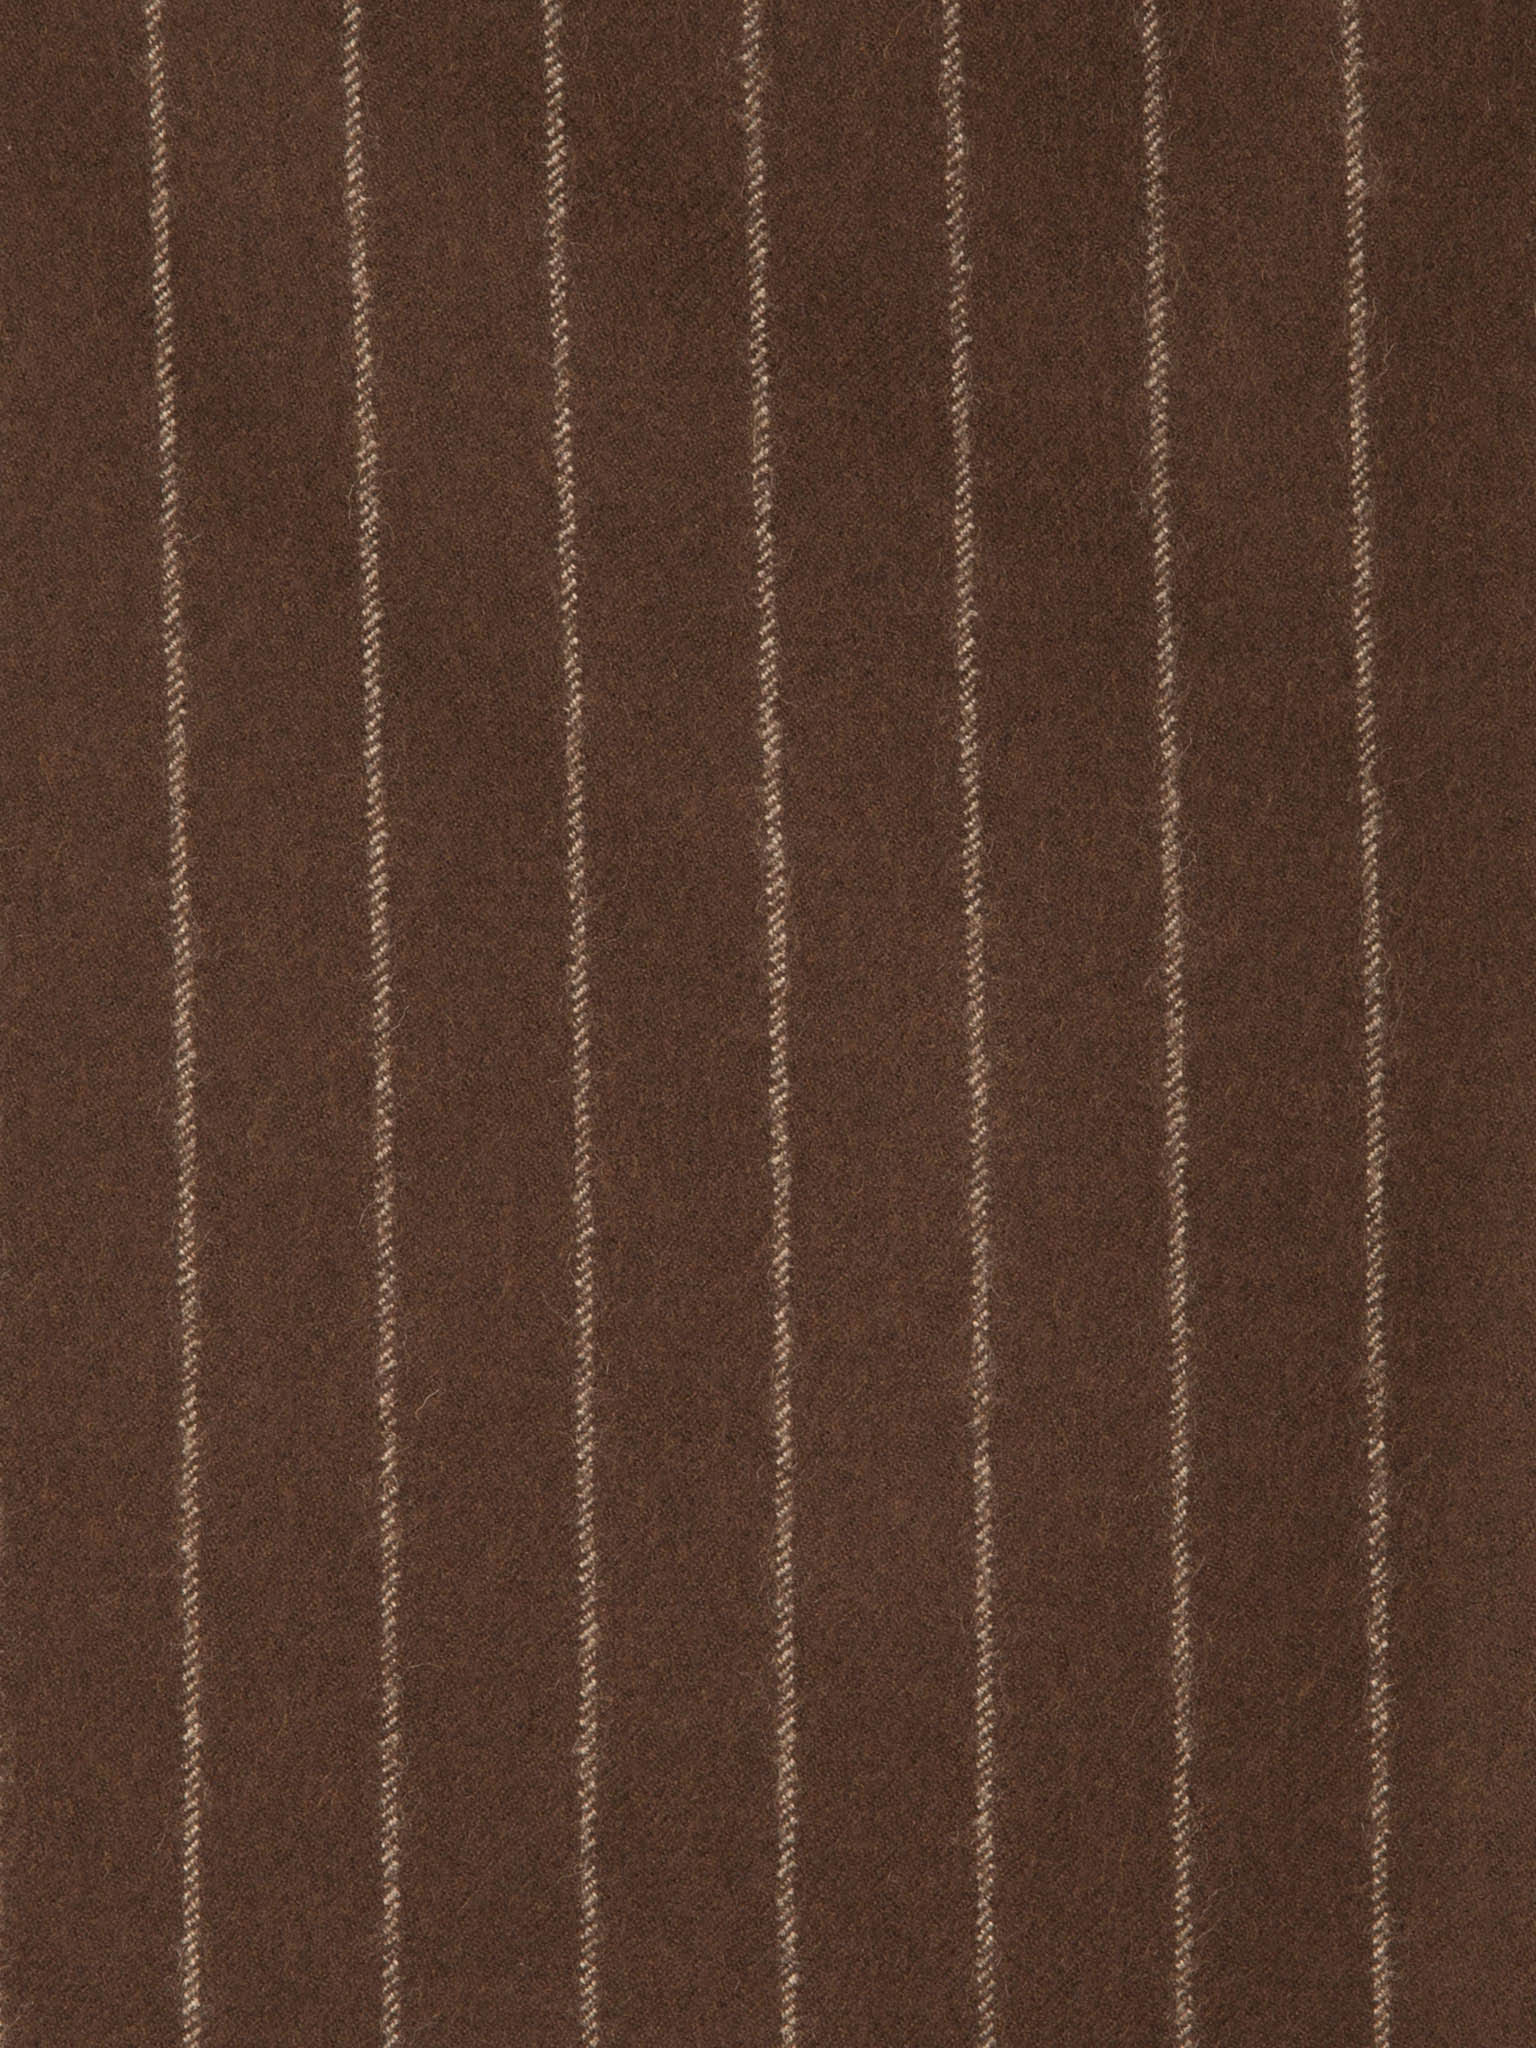 SAVILE ROW CHALK STRIPE DE12071